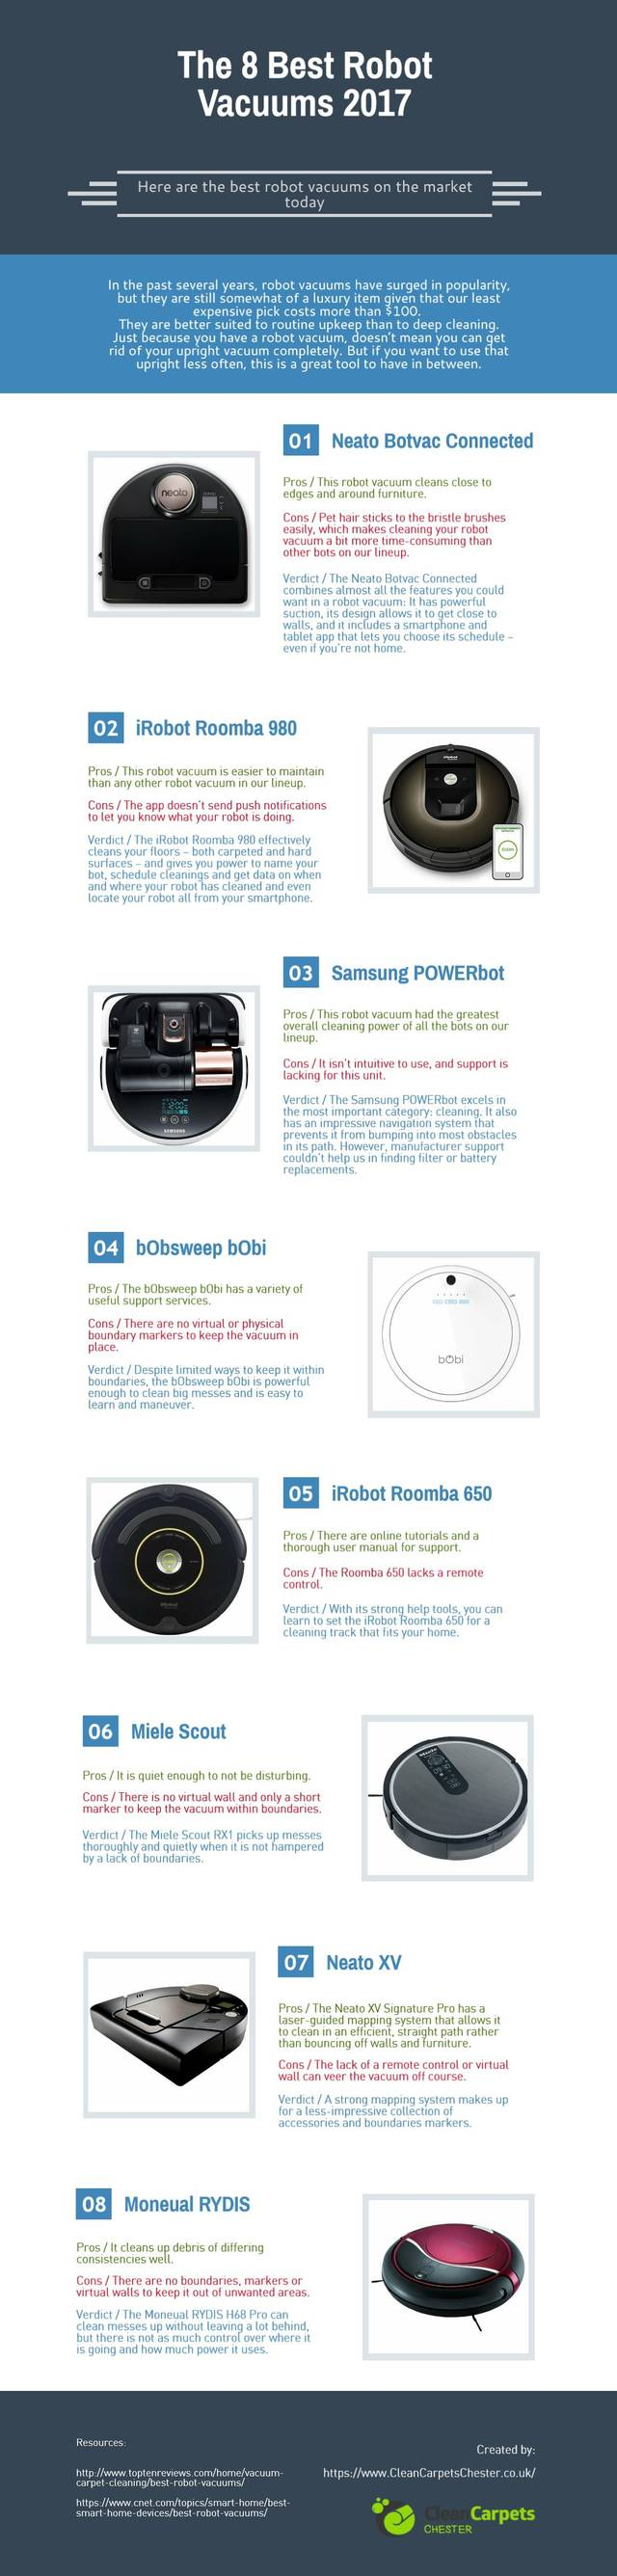 The 8 best robot vacuums 2017